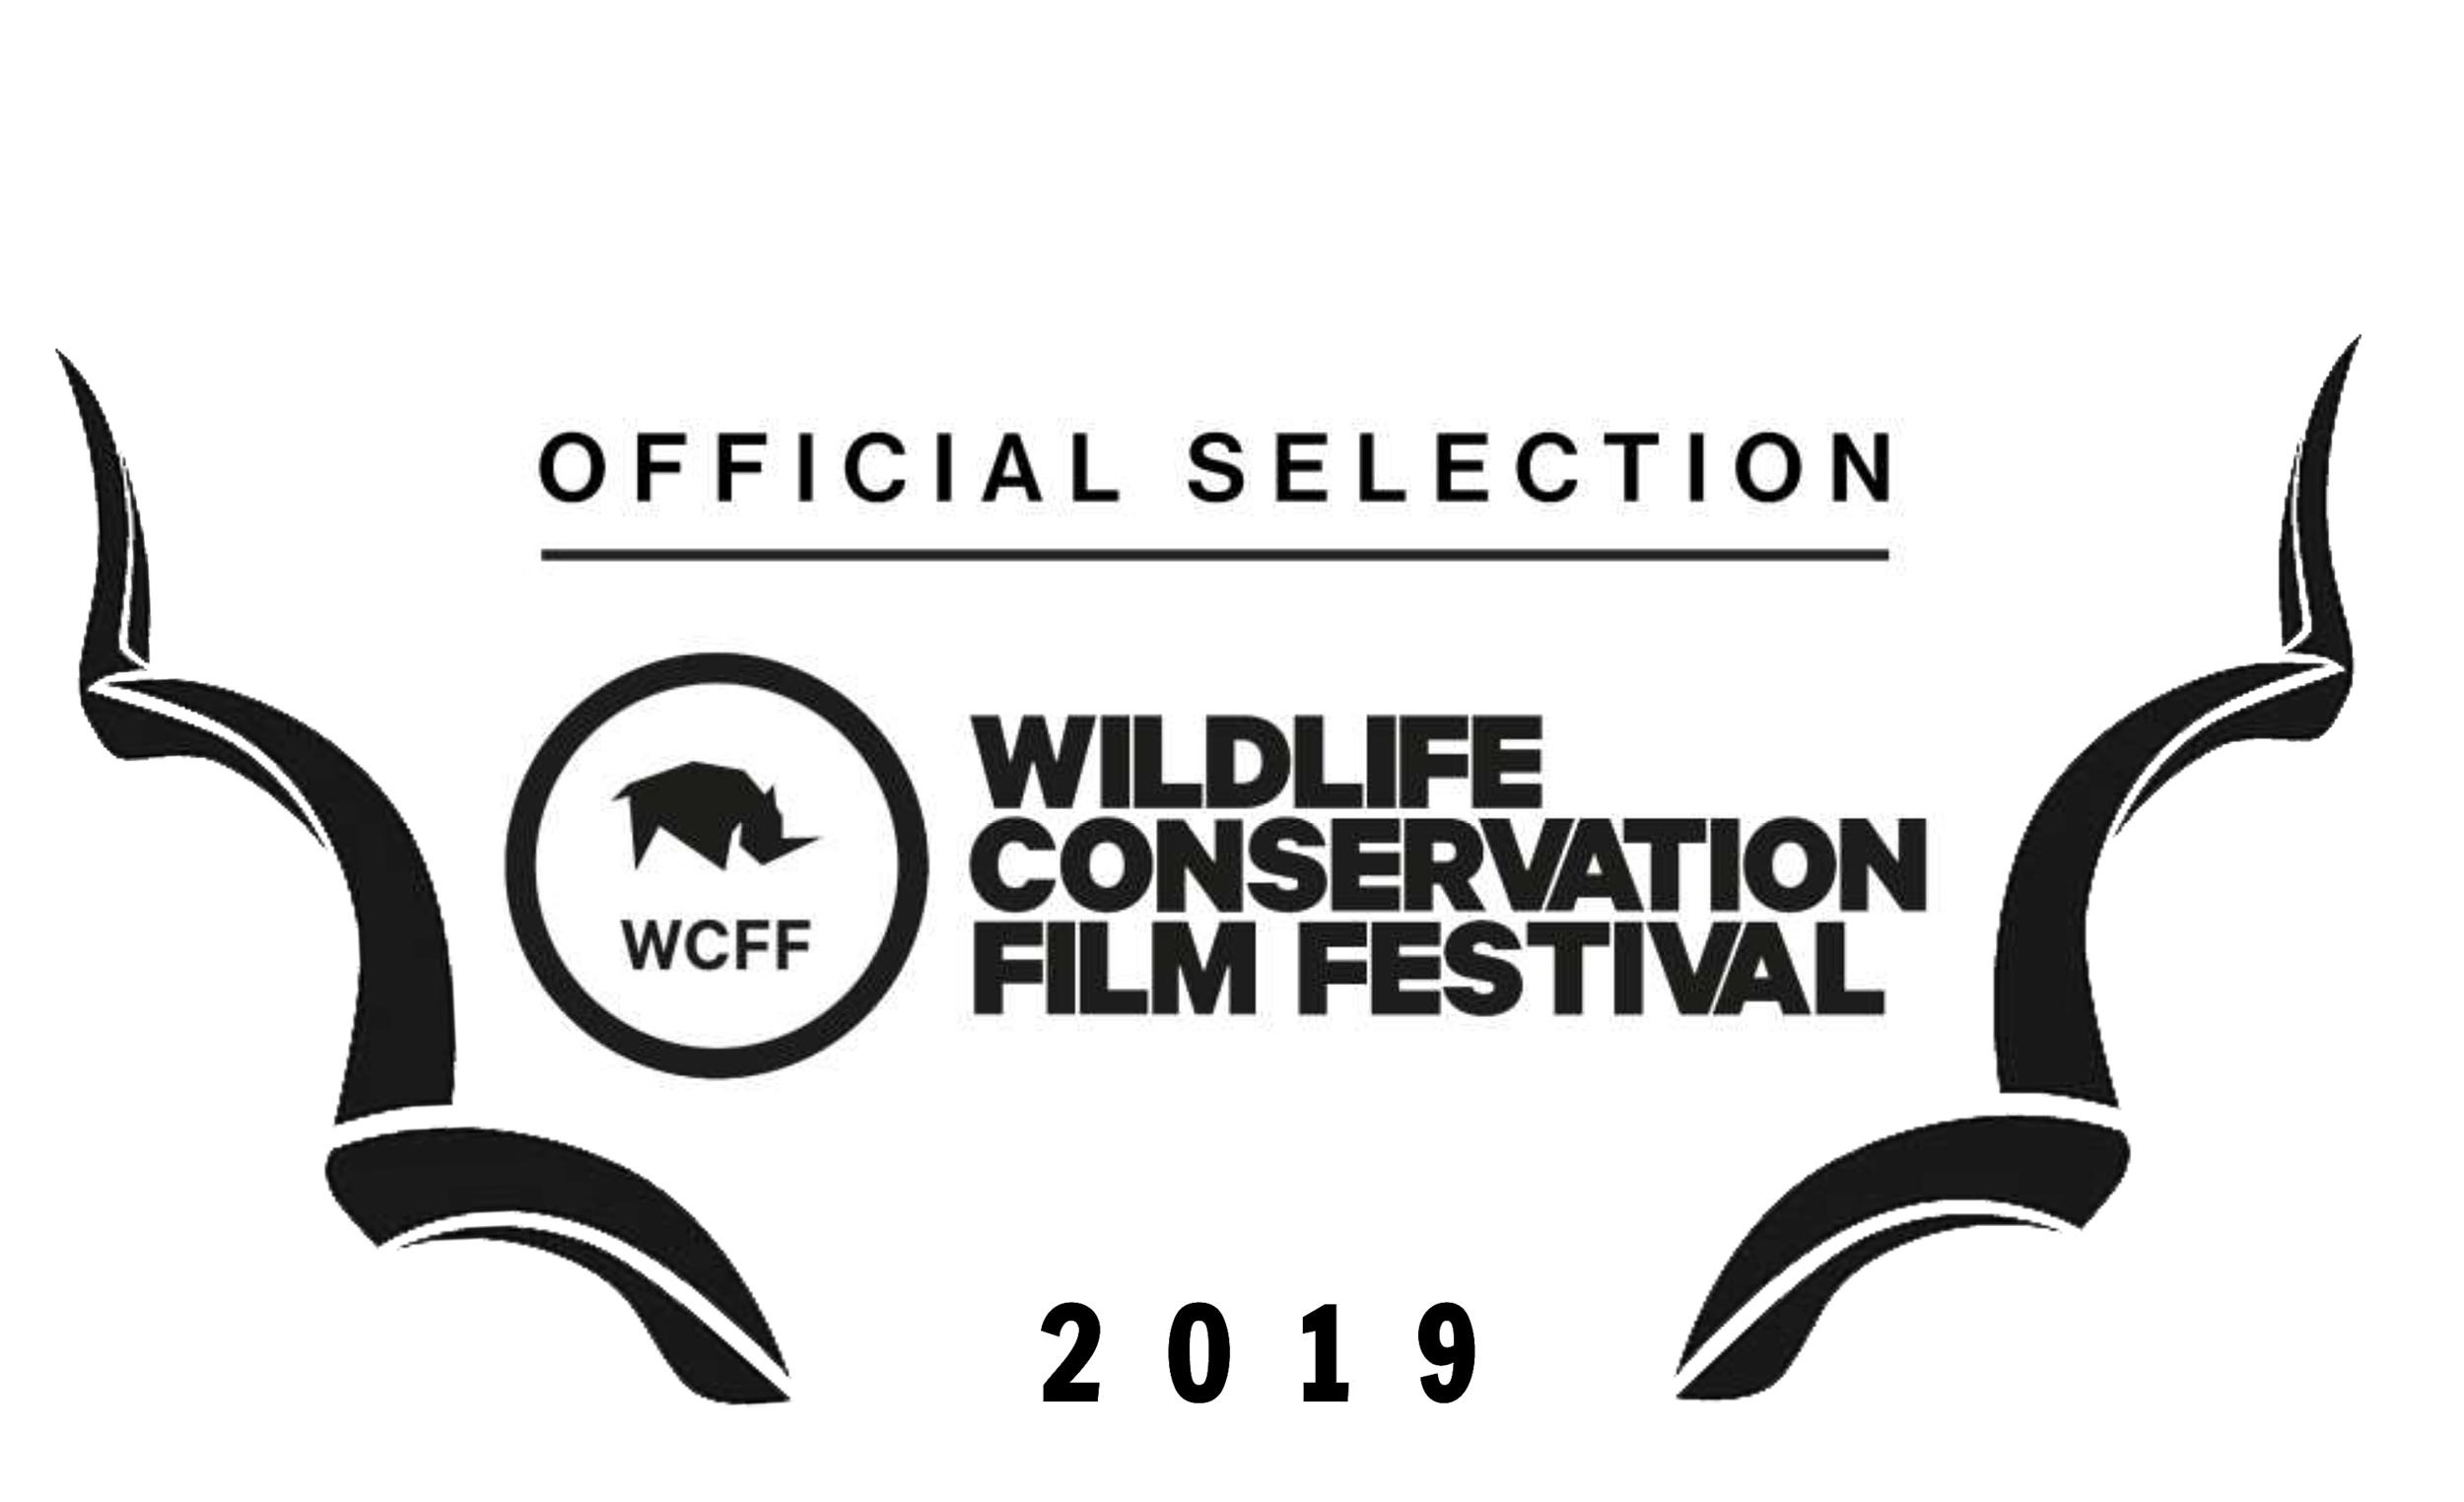 Wildlife Conservation Film Festival - New York, NY8:30 PM, October 18, 2019Cinema Village Theaterhttps://www.wcff.org/